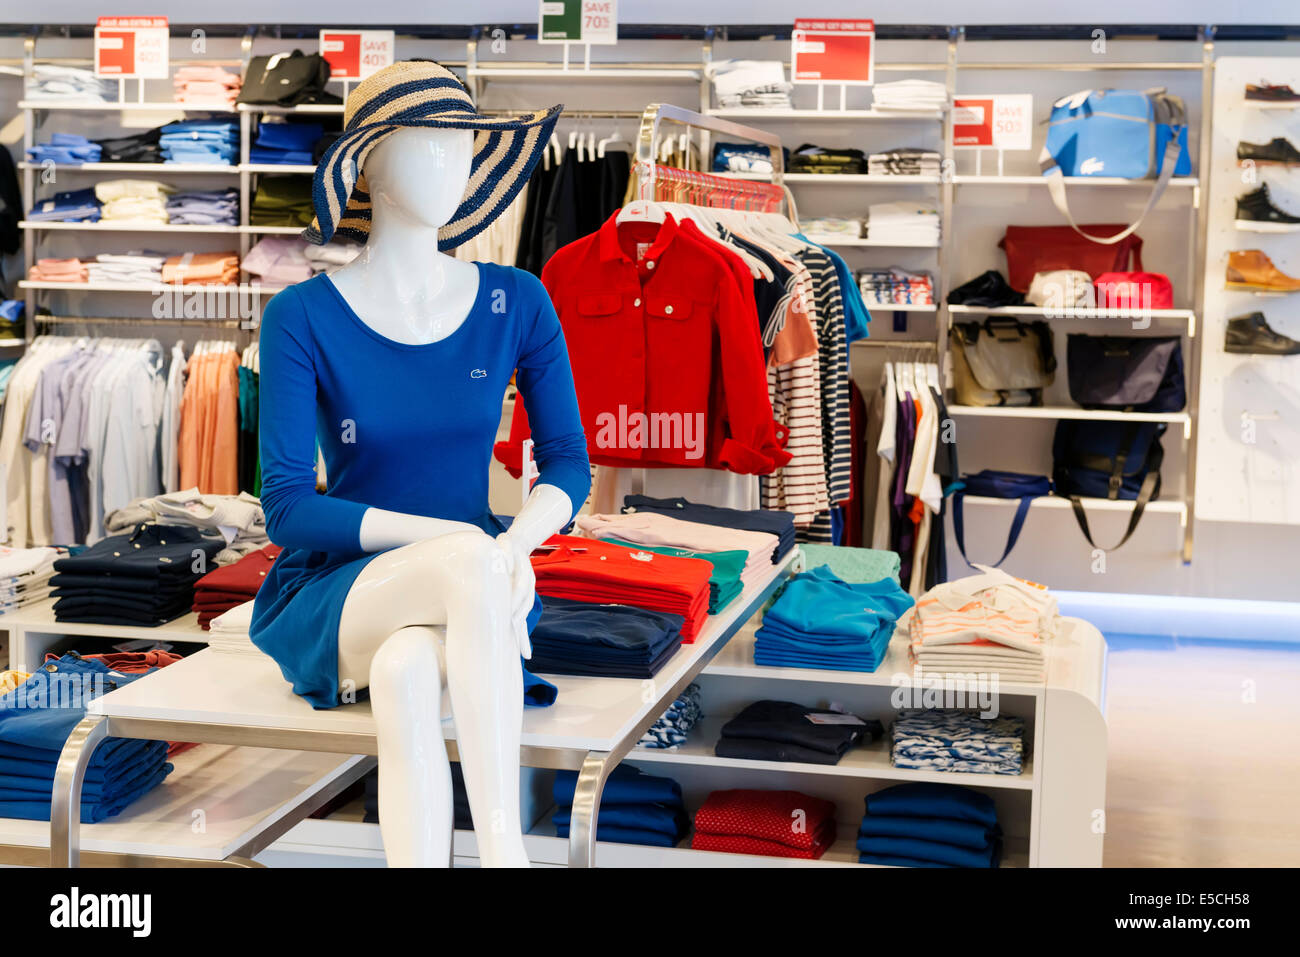 buy online 8d8a6 b6a75 Lacoste Stock Photos & Lacoste Stock Images - Alamy